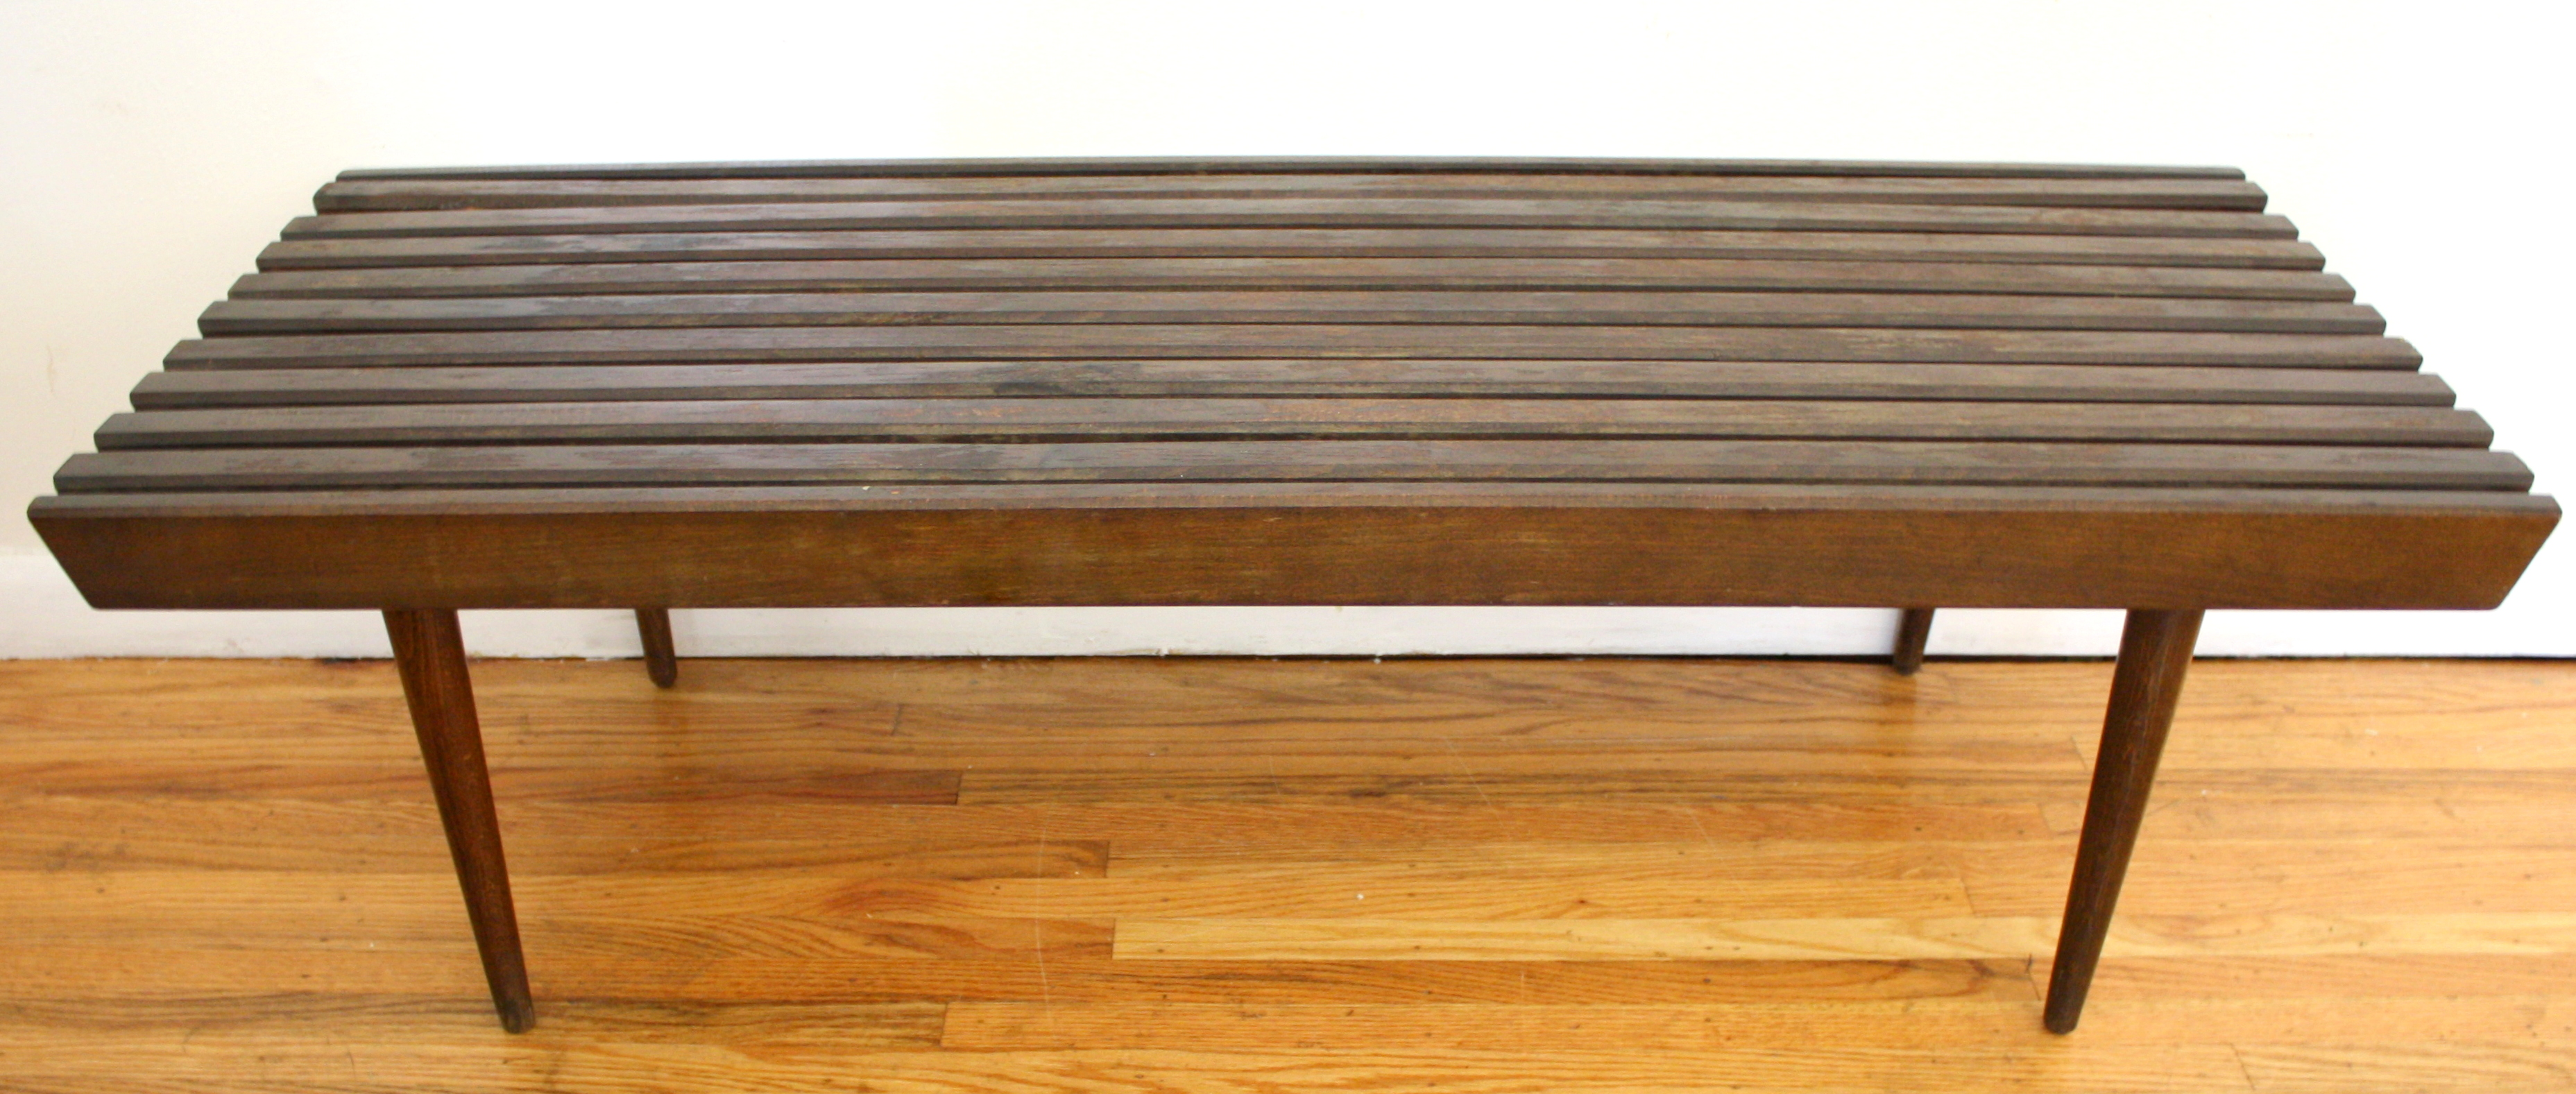 table pin wood slat coffee walnut bench century vintage mid reserved modern